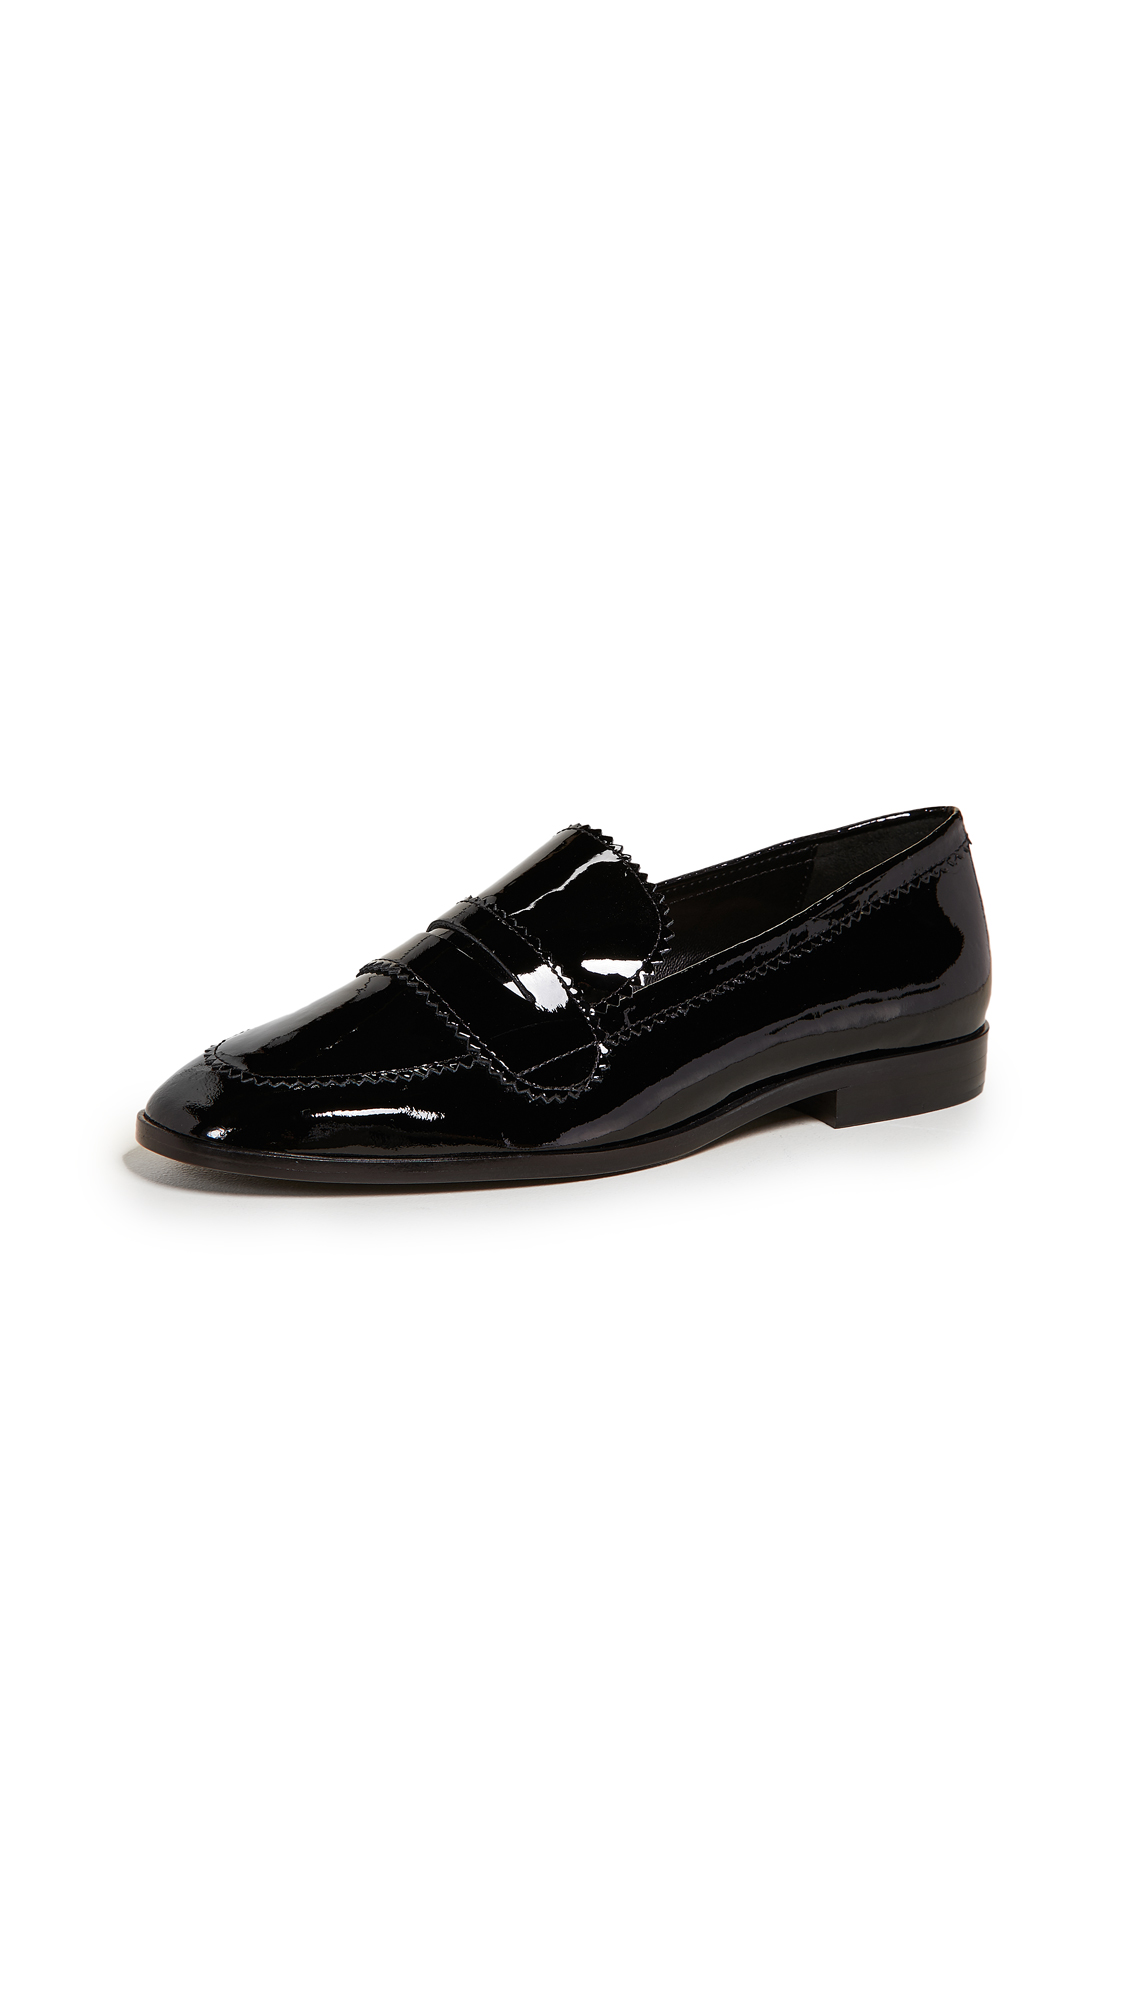 Loeffler Randall Beatrix Loafers - Black